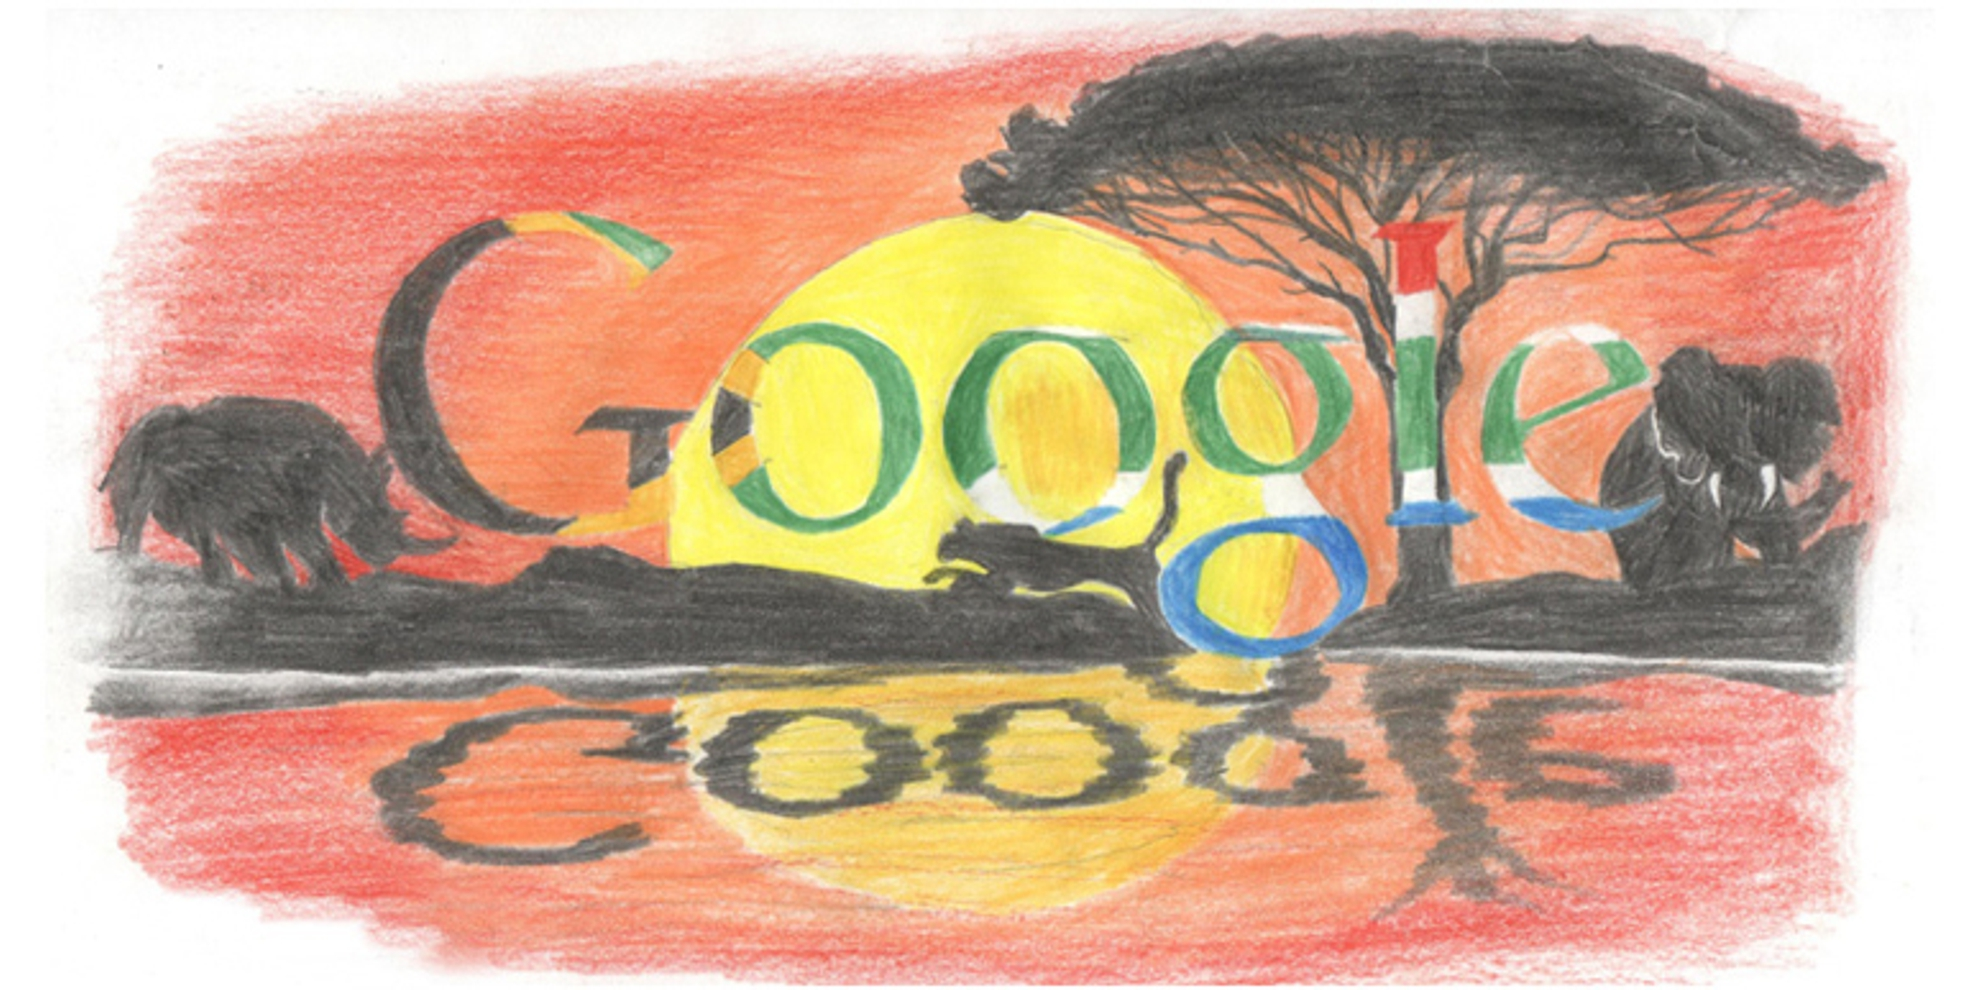 Doodle-4-Google-South-Africa-winner-Katya-Ludick